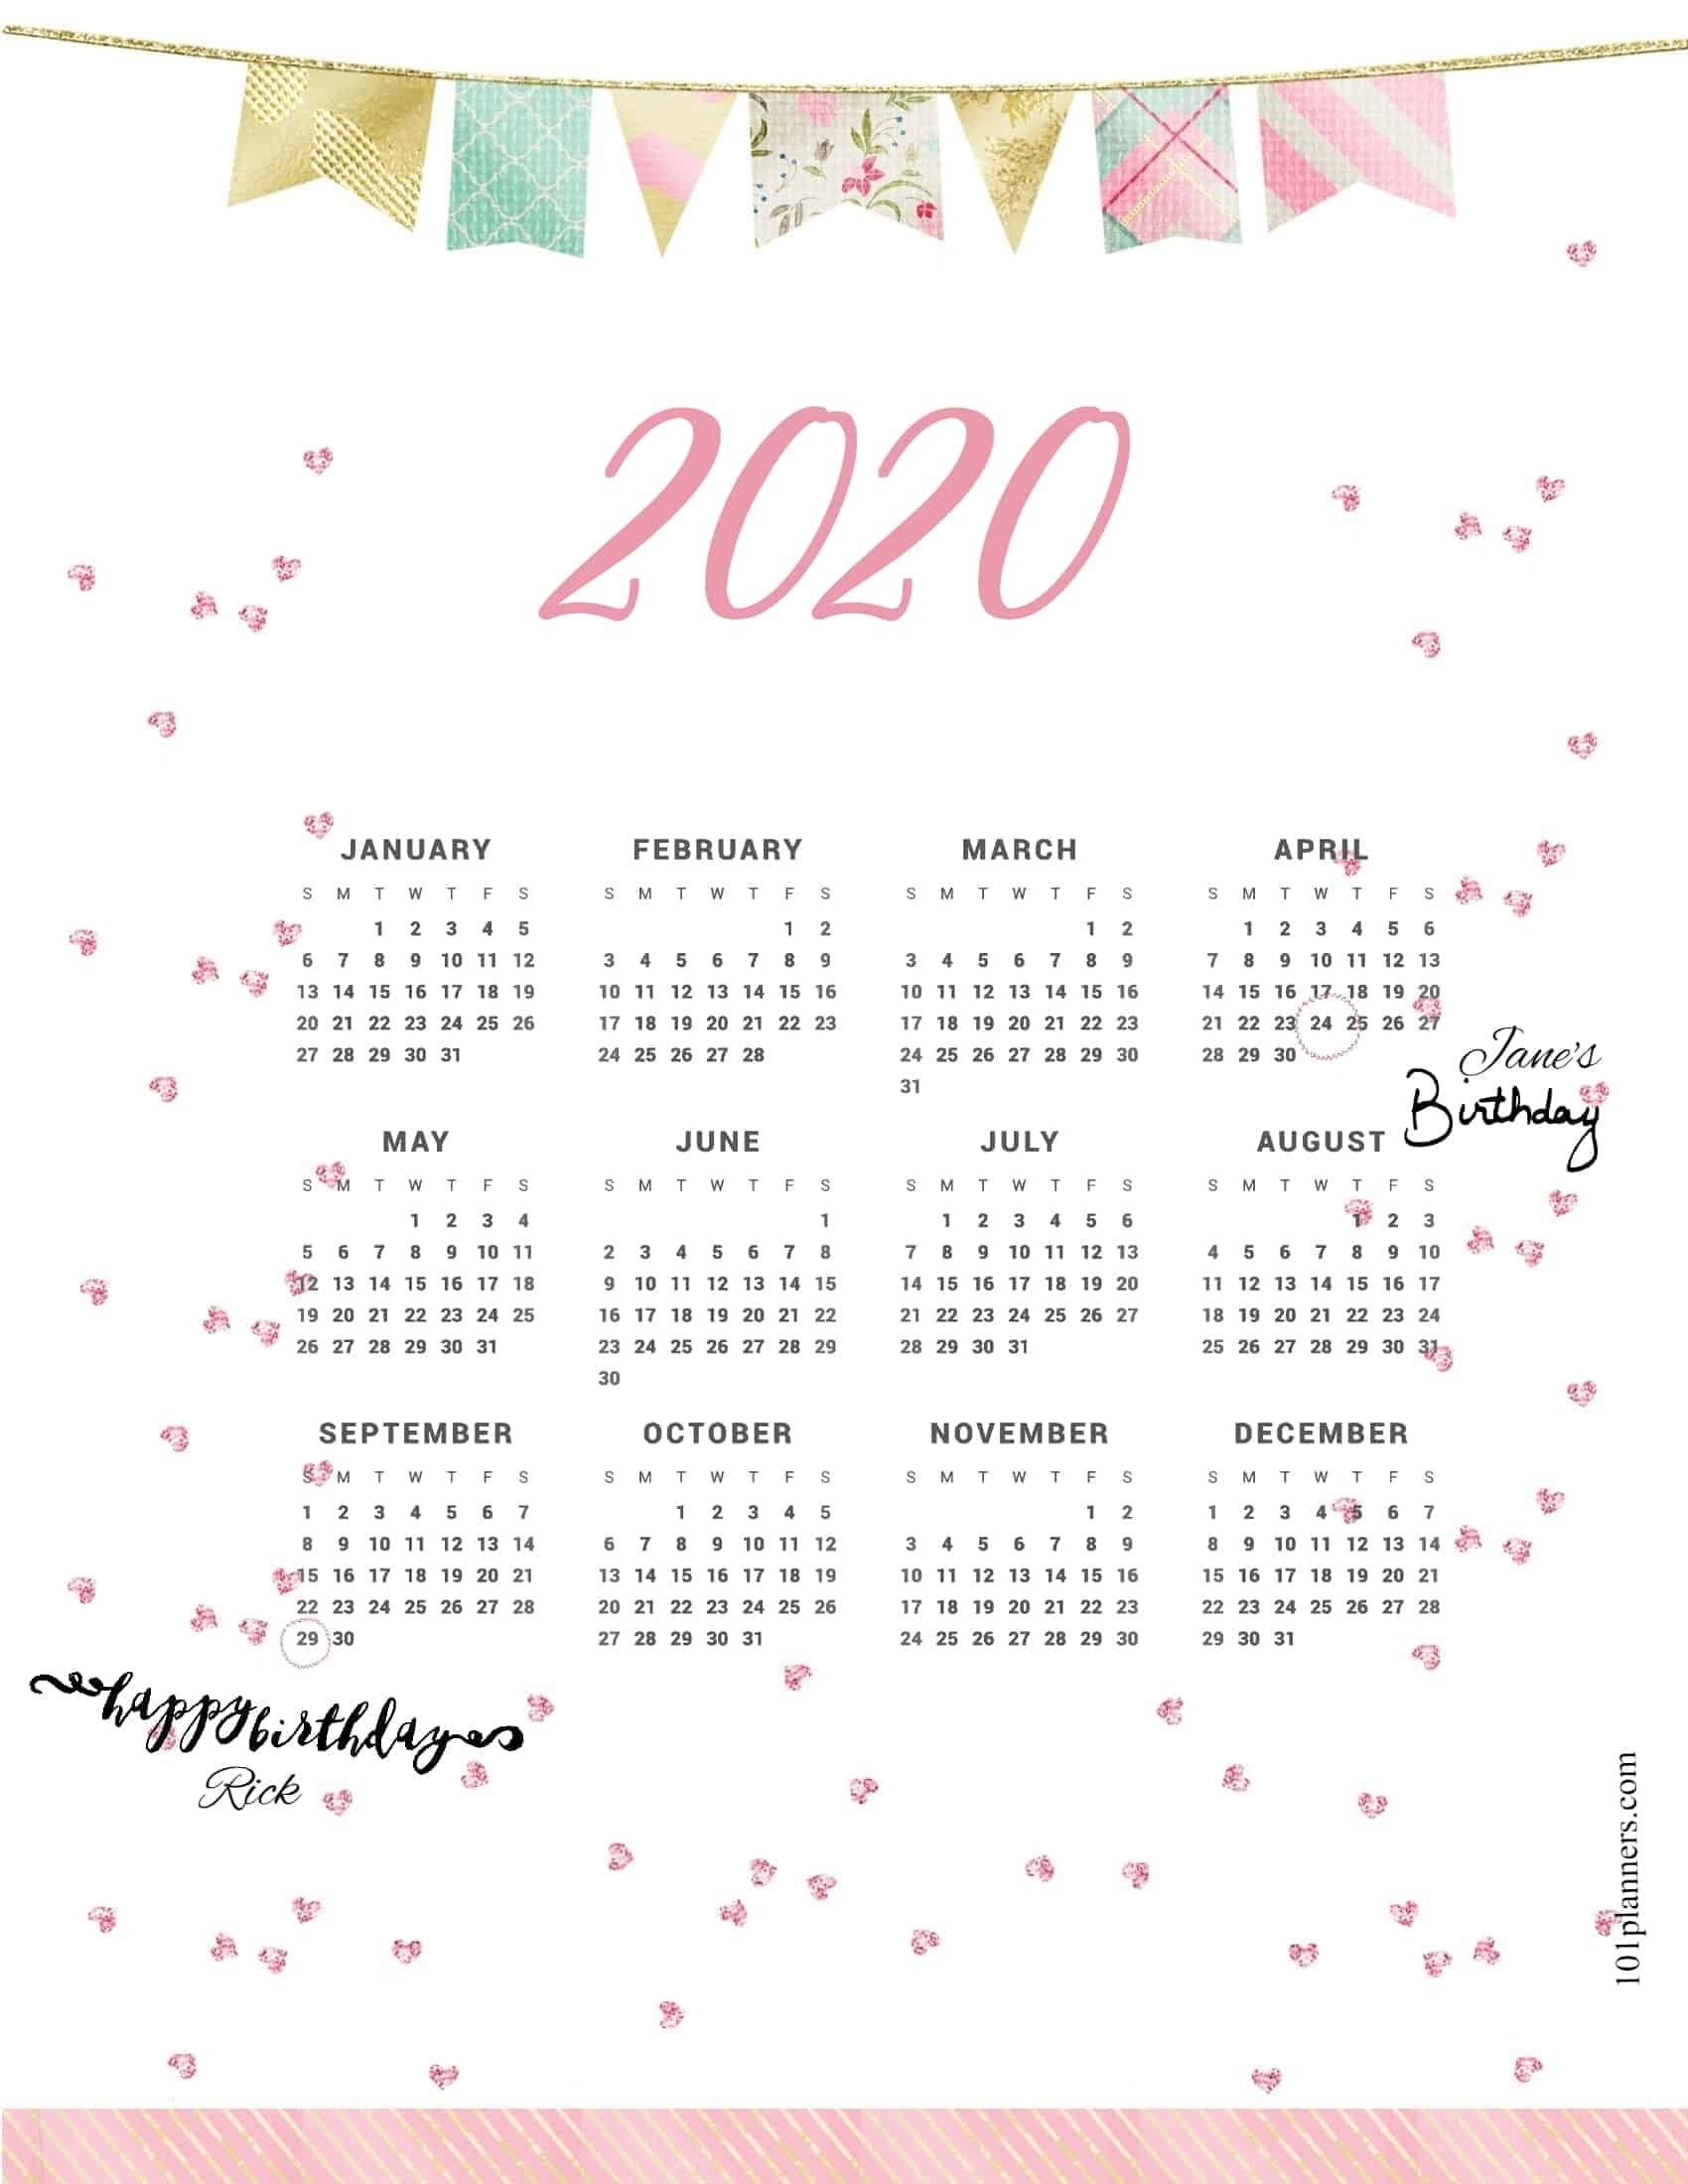 Free Printable 2020 Yearly Calendar At A Glance | 101 within Printable Month At A Glance Calendar 2020